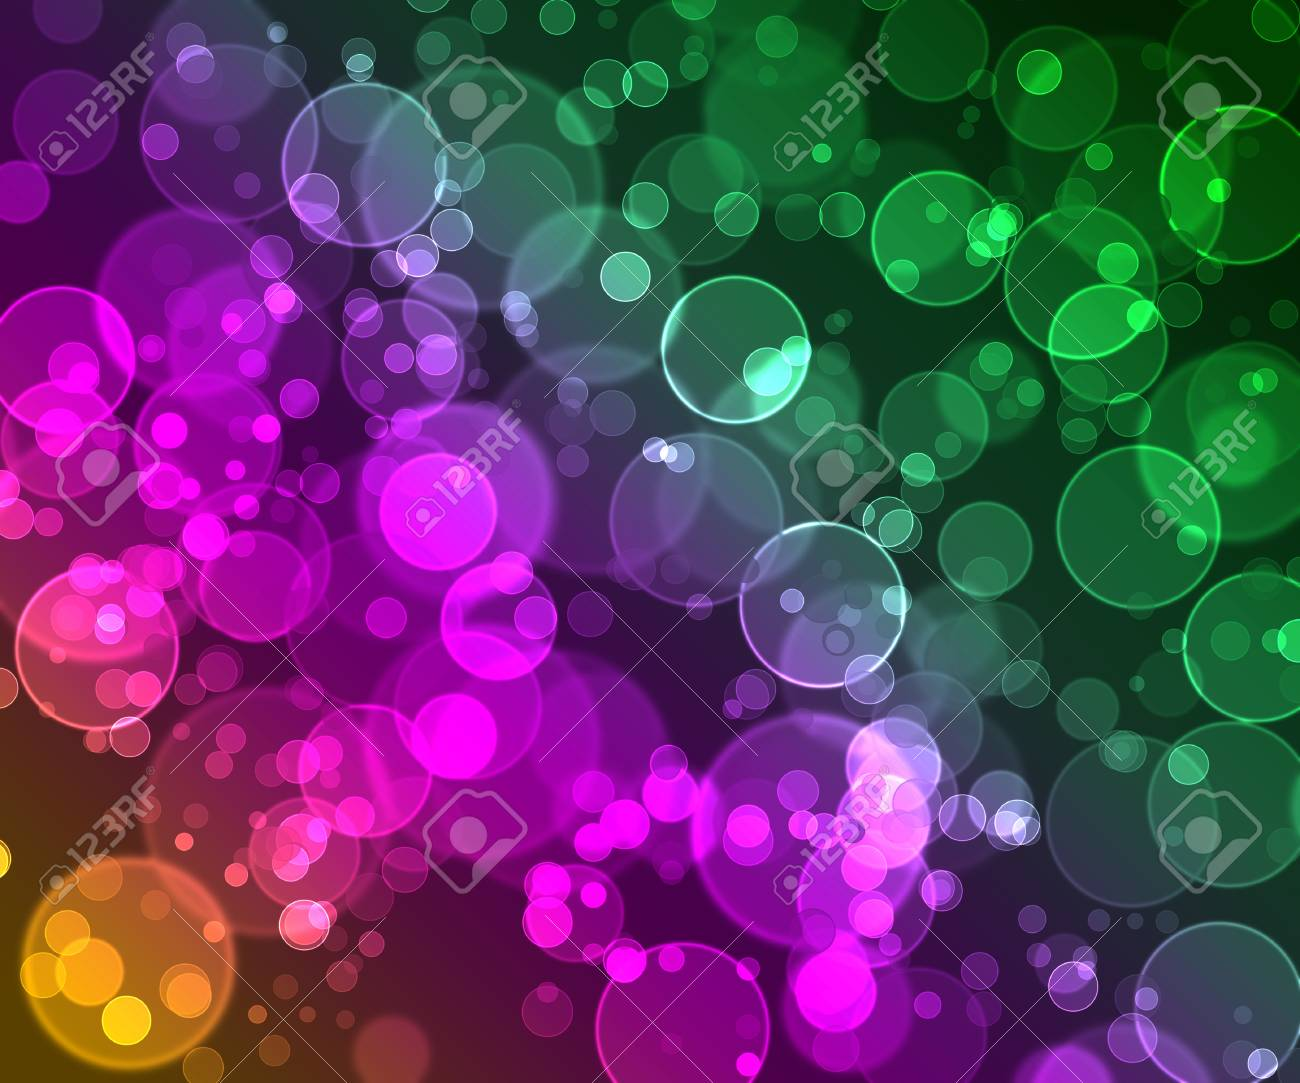 The color gamma of the bubbles Stock Photo - 16321706